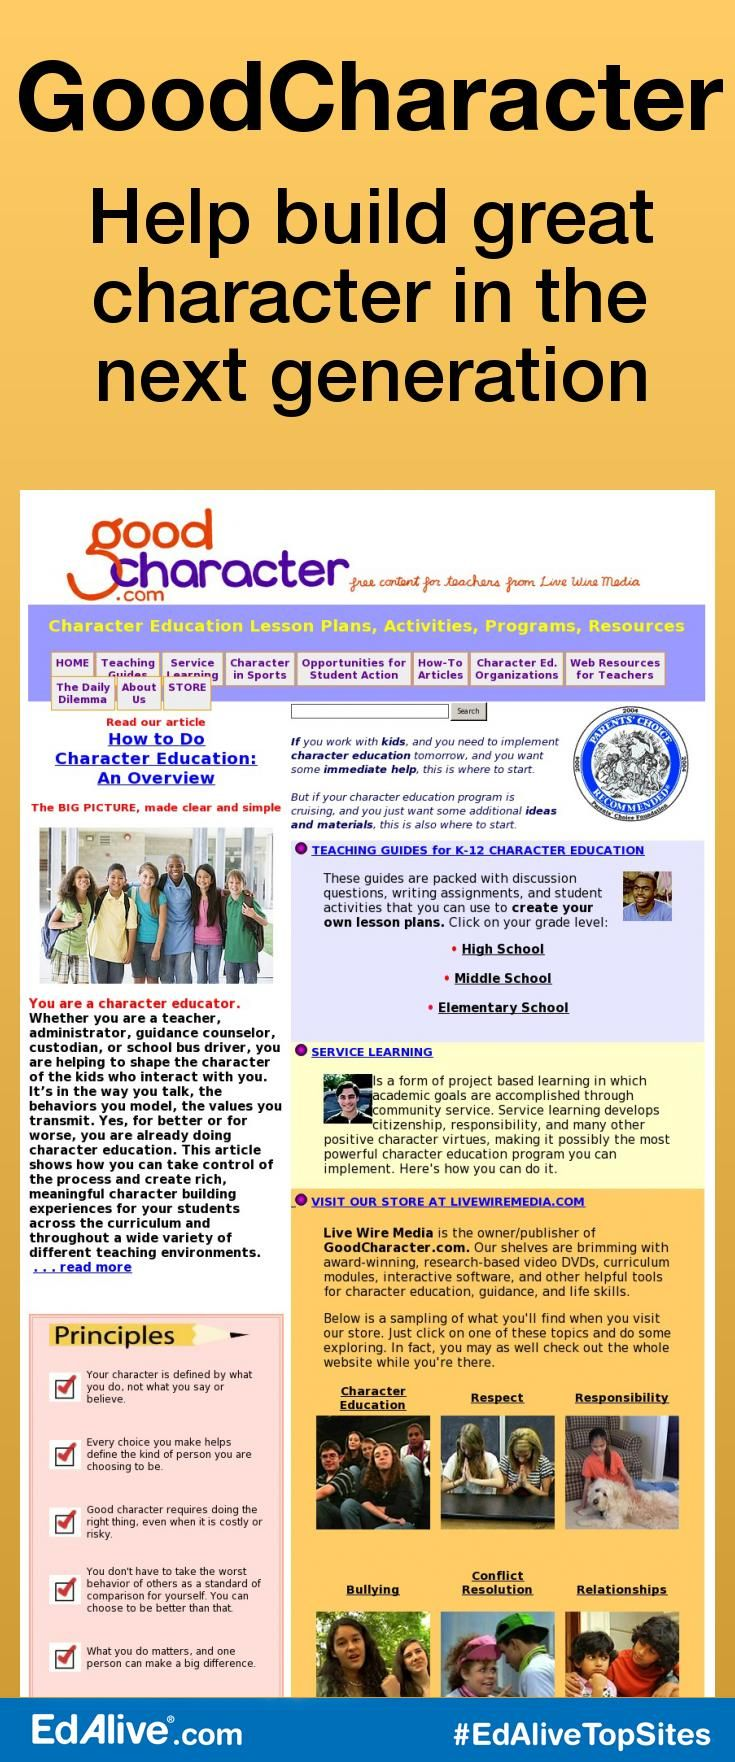 die besten ideen zu positive character traits auf goodcharacter help build great character in the next generation encourages students to develop positive